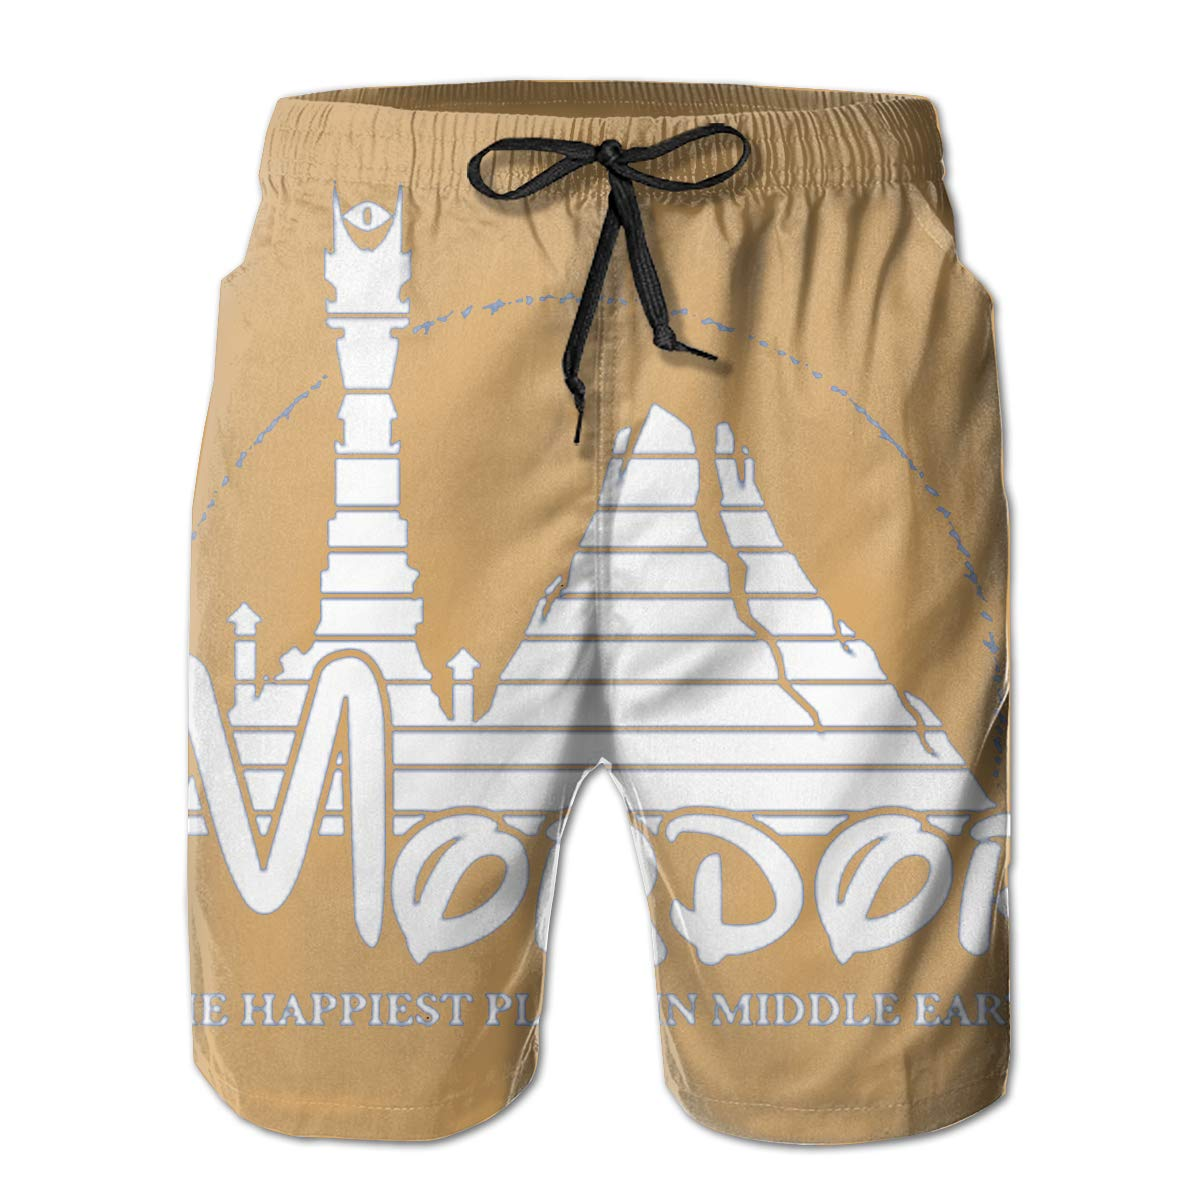 The Happiest Place in Middle Earth Mens Swim Trunks Bathing Suit Beach Shorts